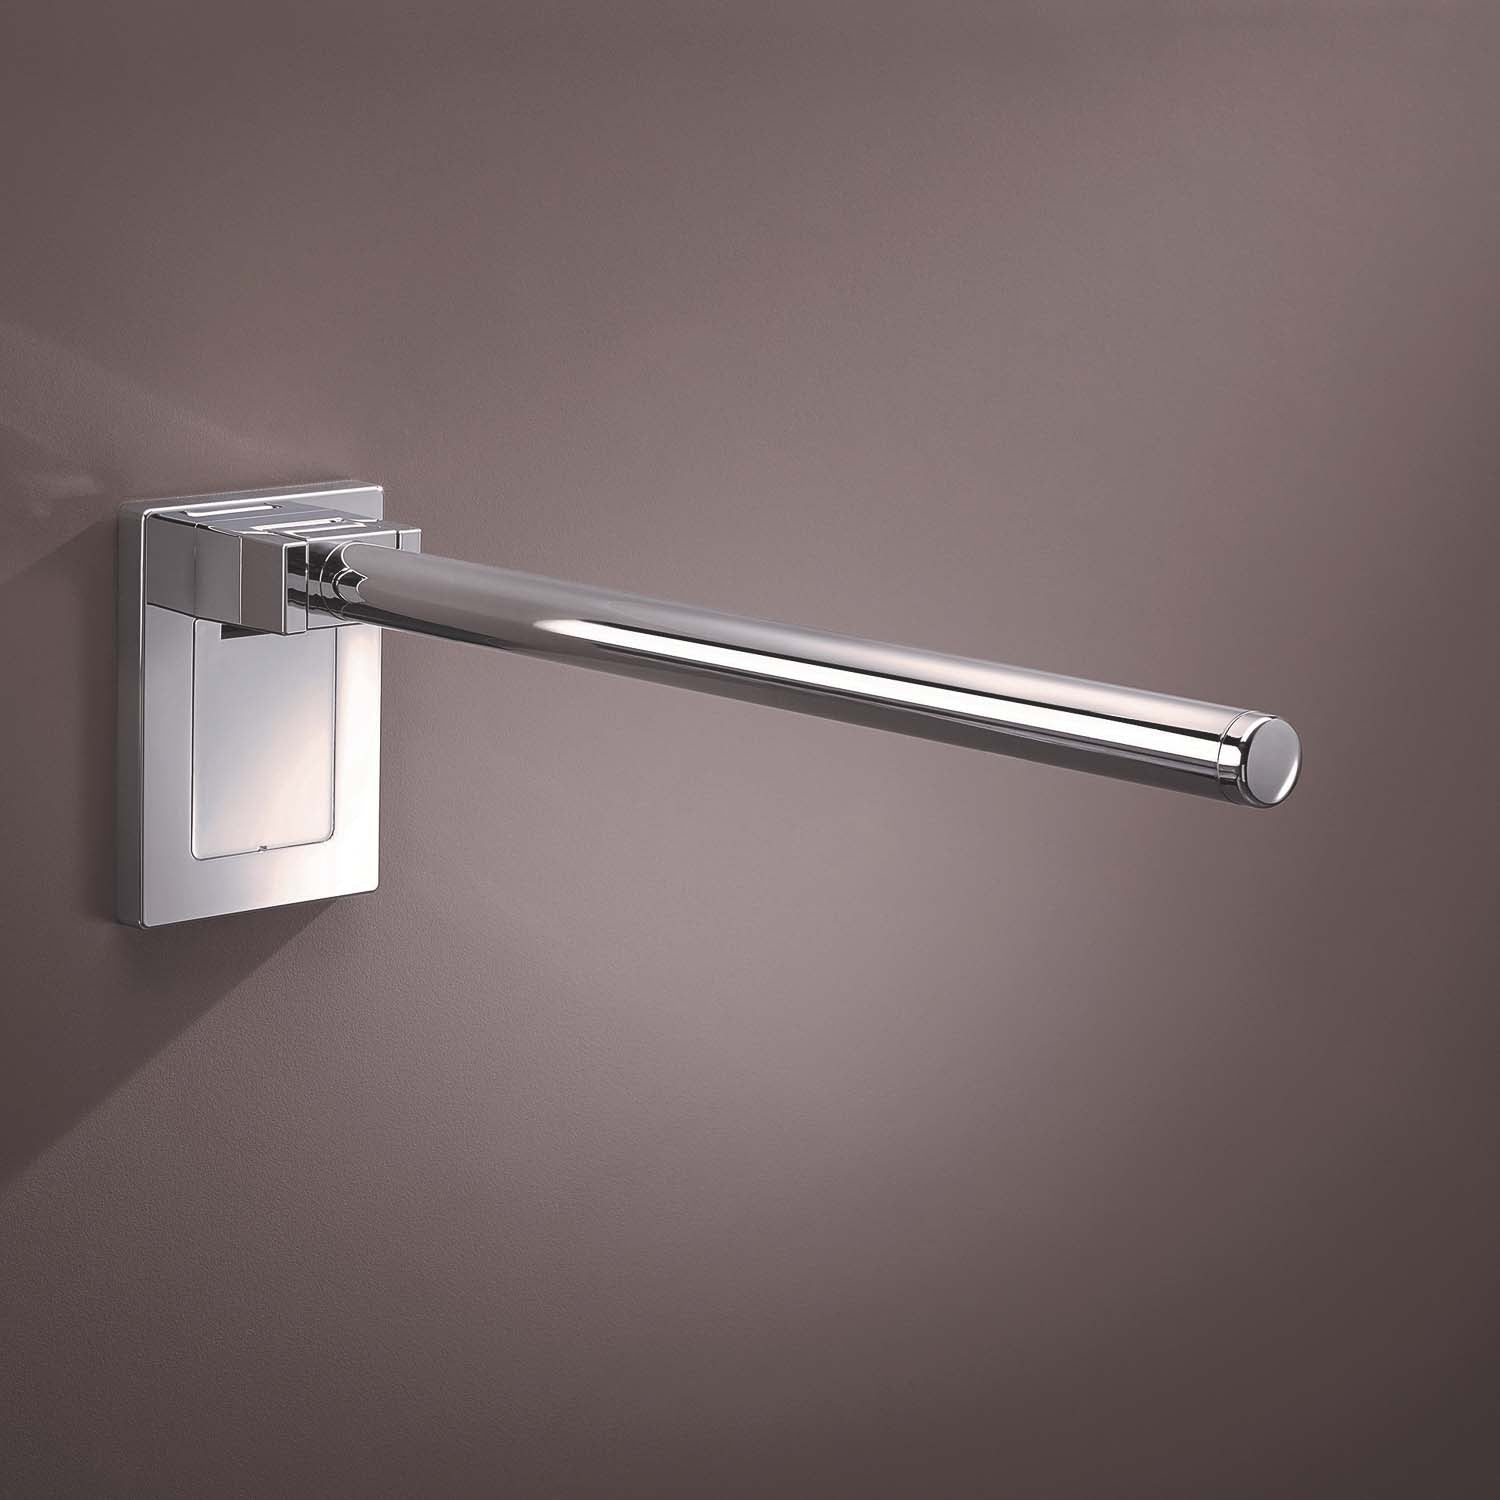 850mm Circula Hinged Grab Rail with a chrome-look finish lifestyle image